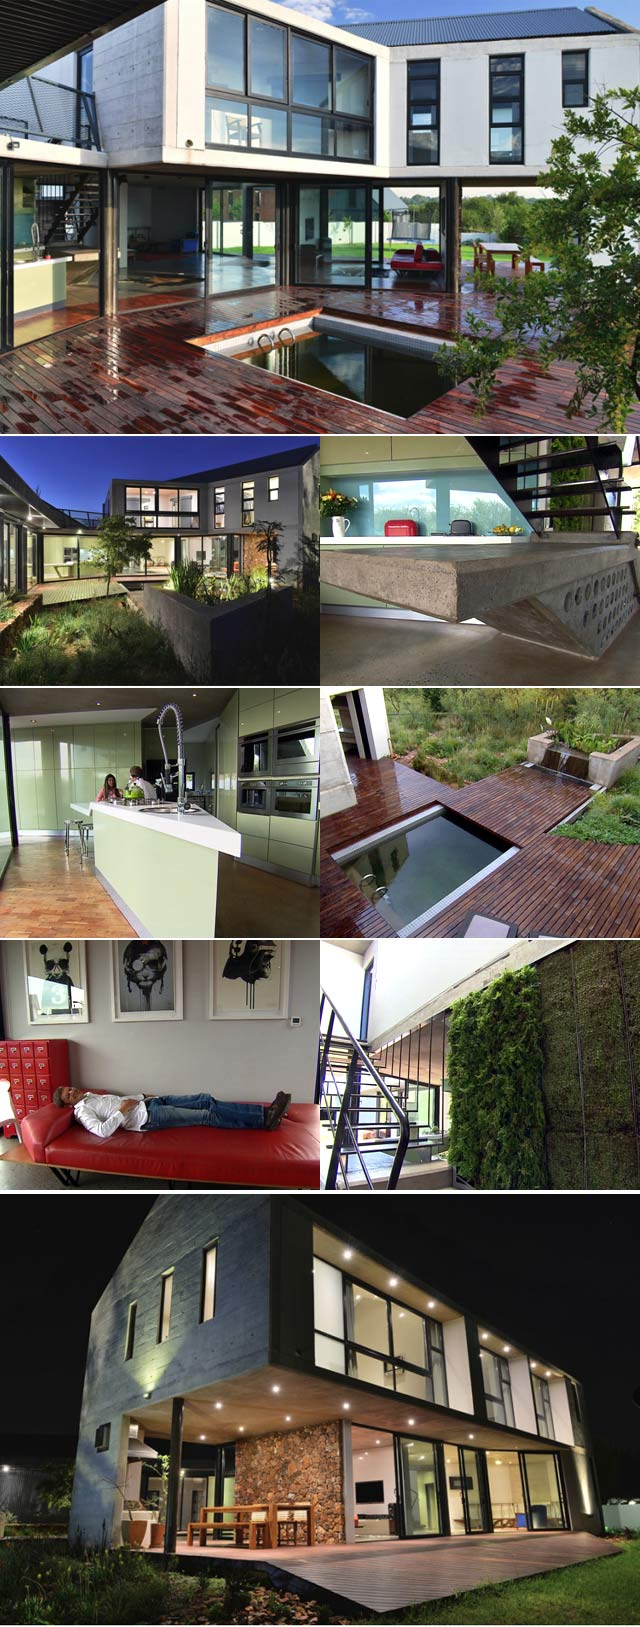 Top Billing features eco industrial home